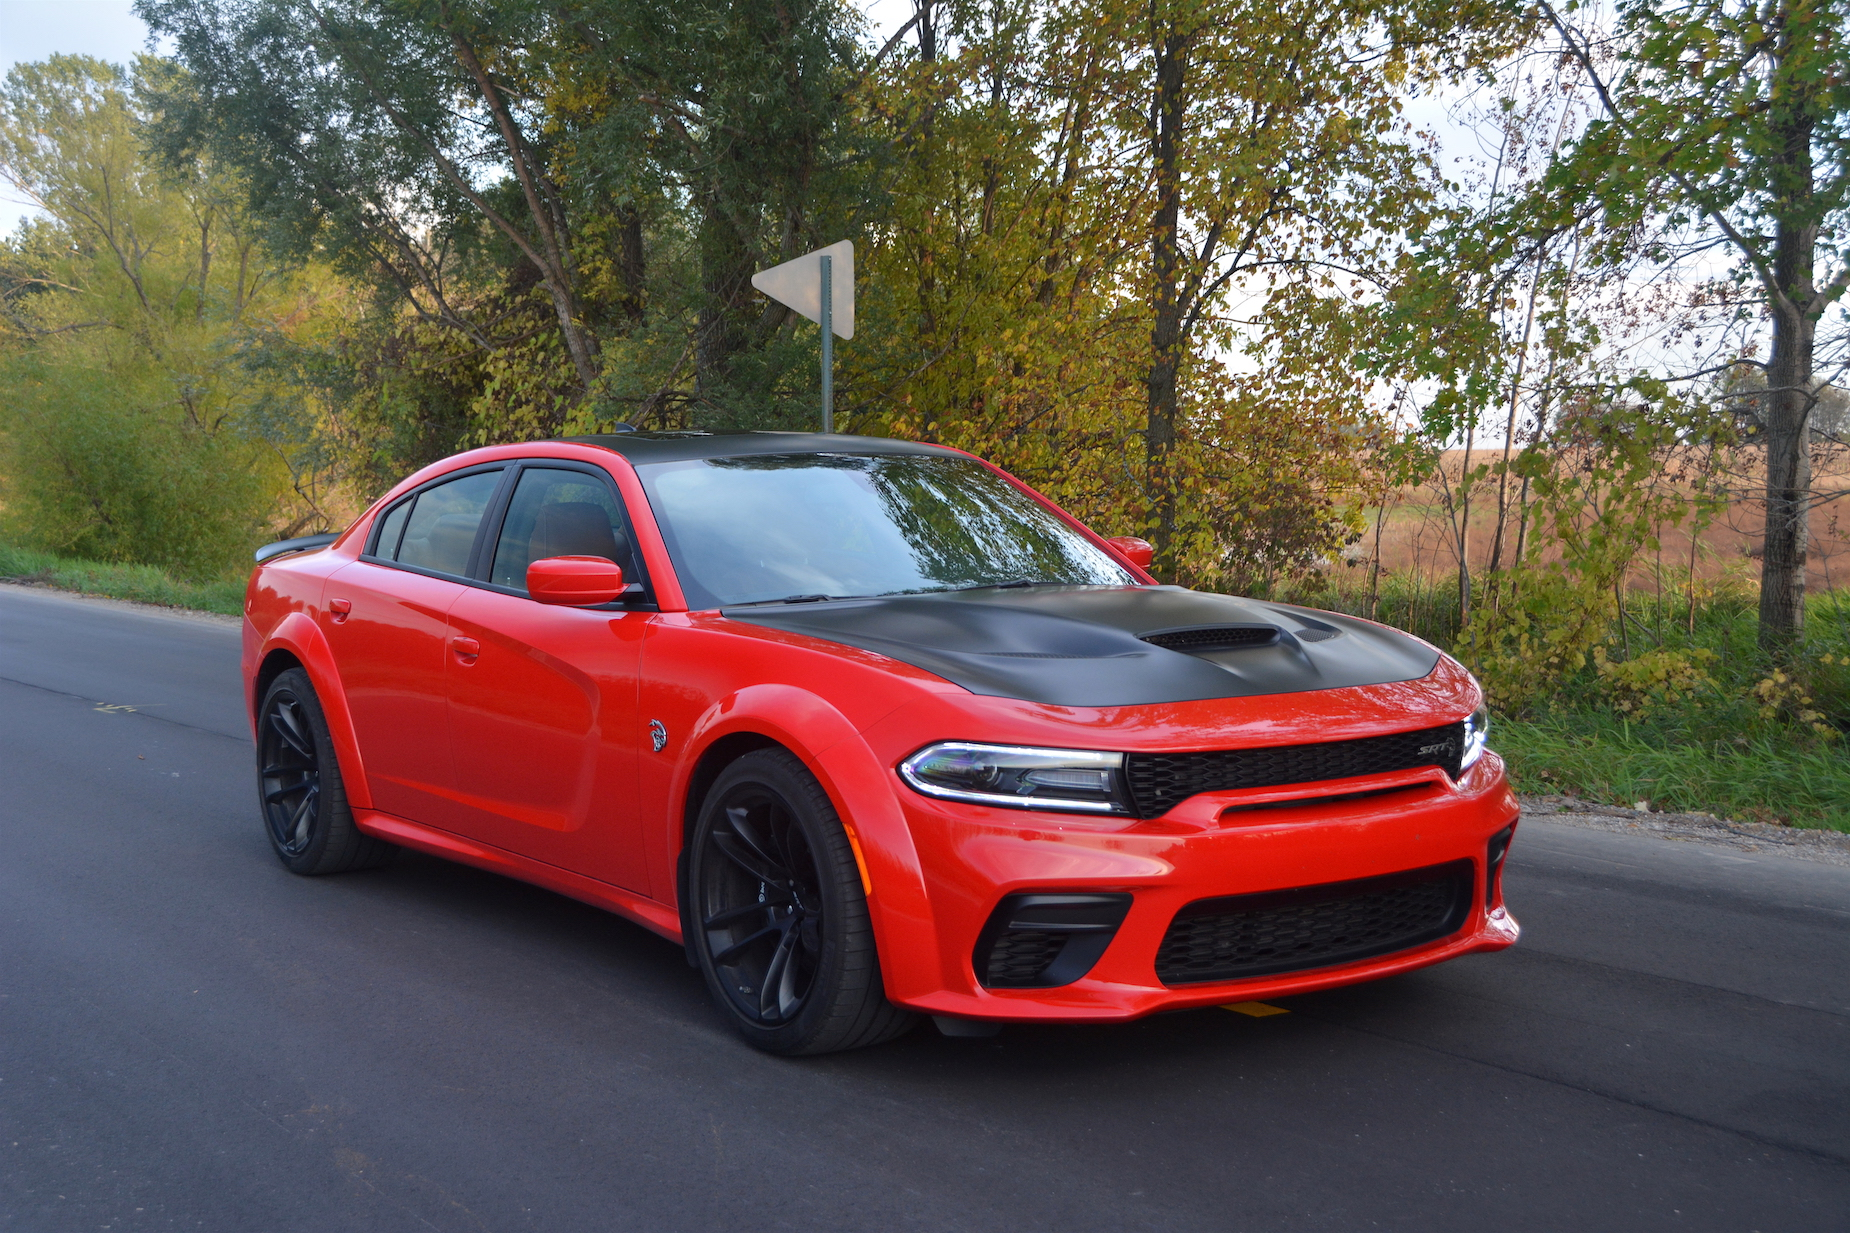 2020 Dodge Charger Srt Hellcat Widebody Review Gtspirit